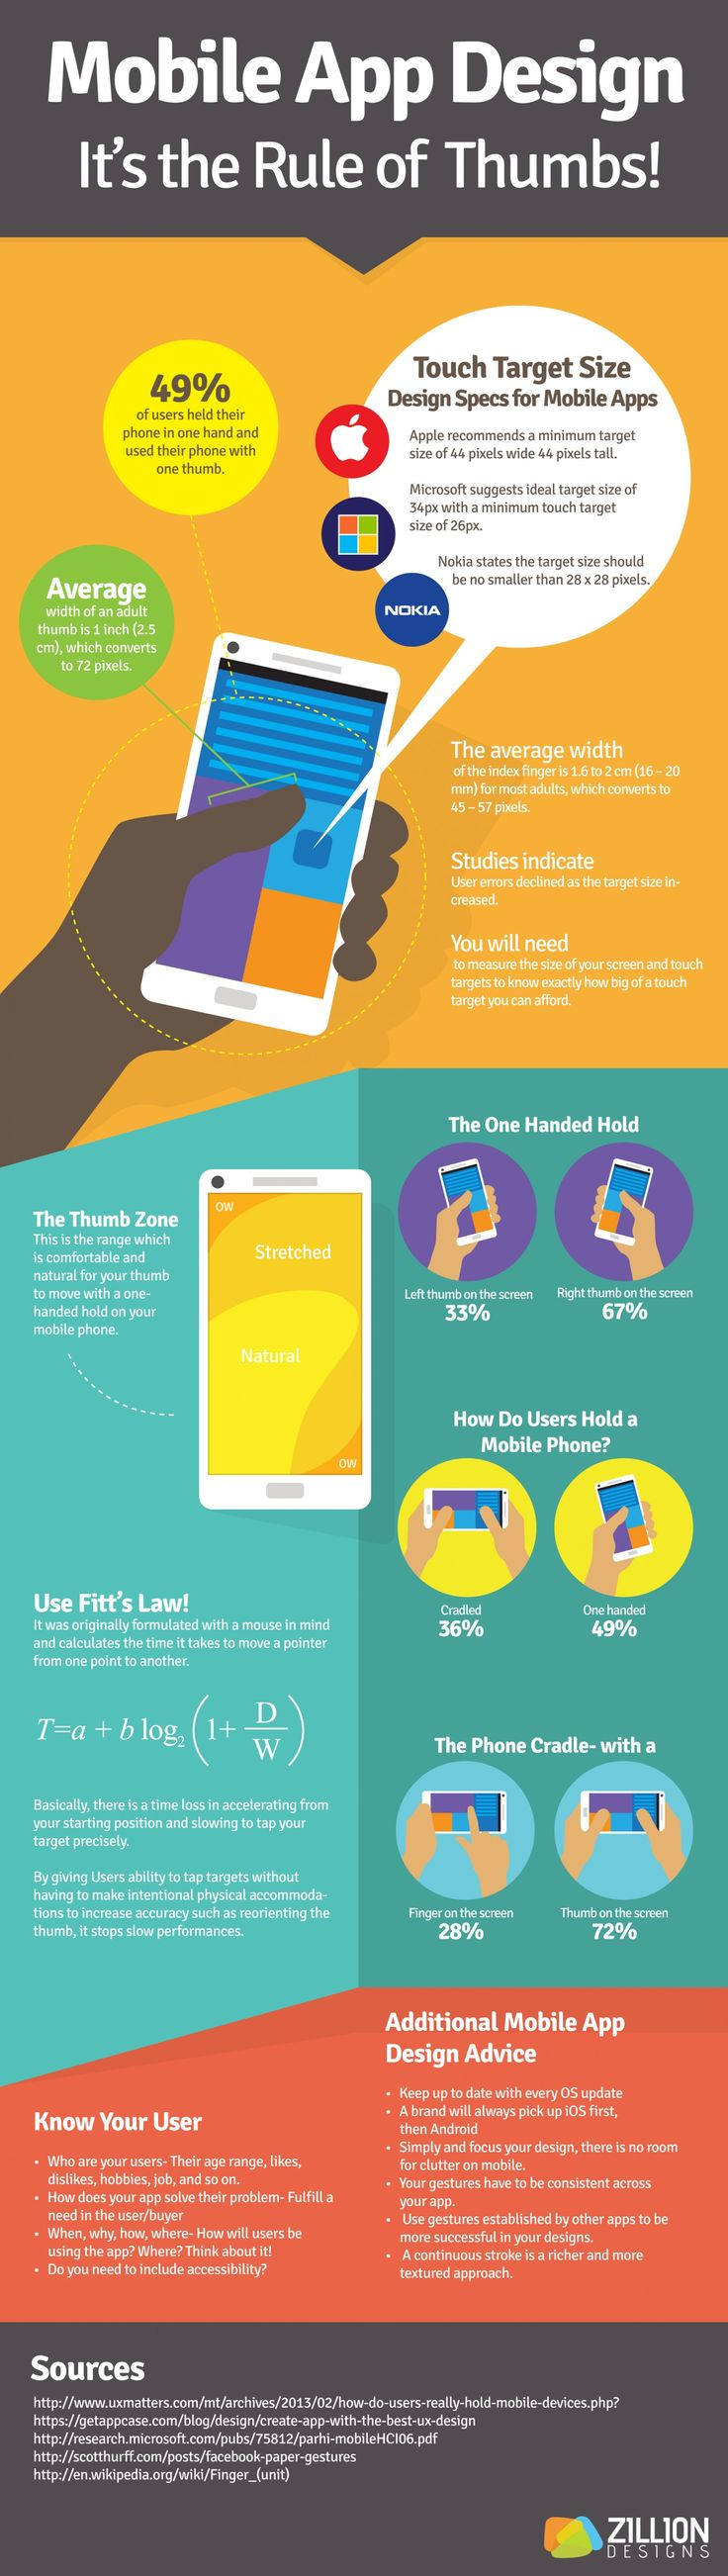 #Mobile #App #Design - It's the Rule of Thumbs!